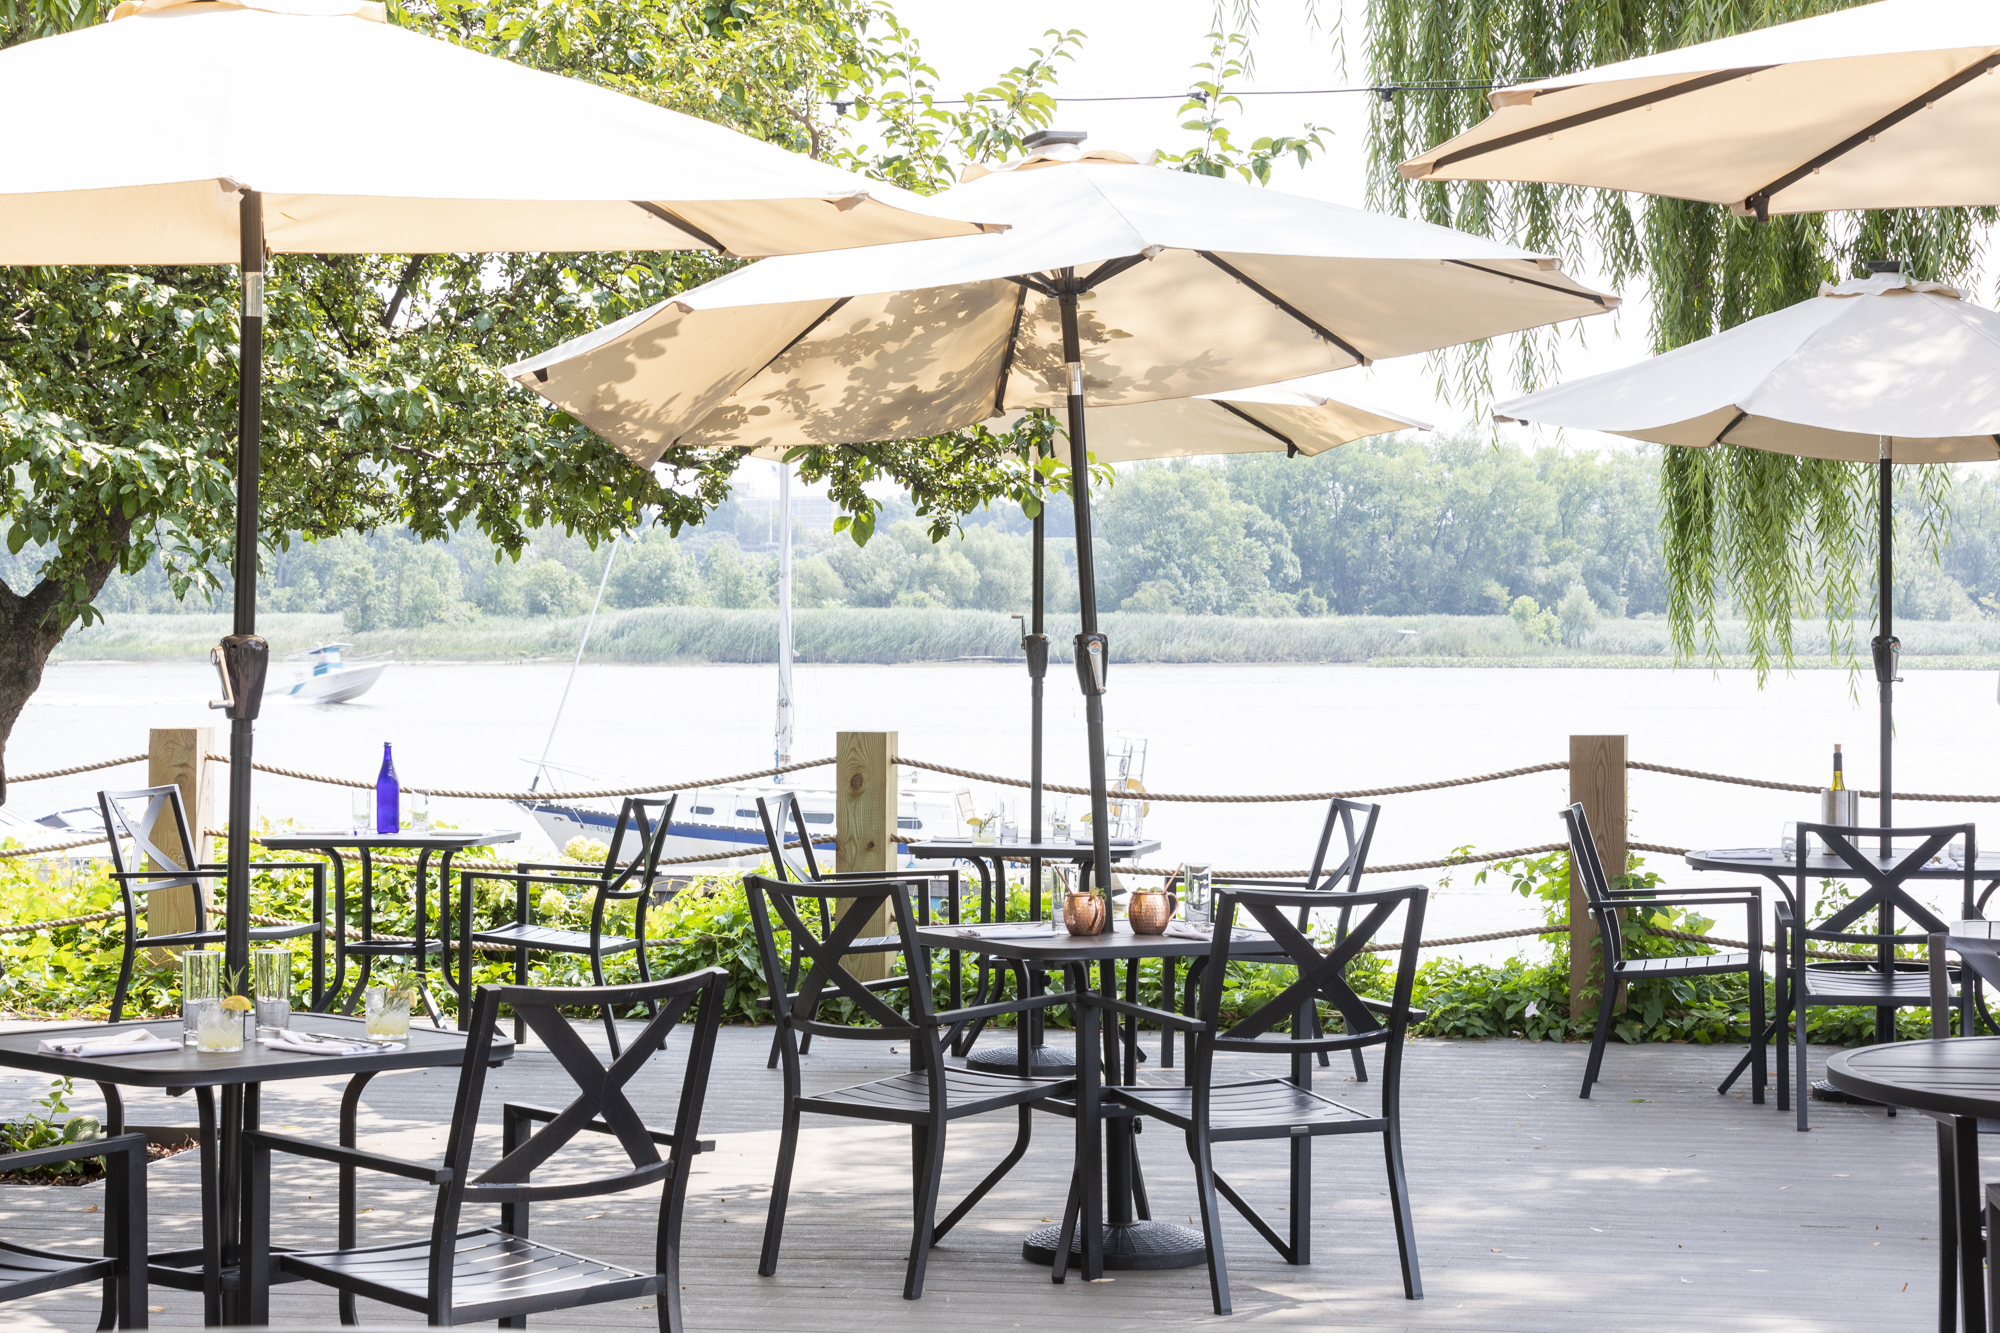 18 Riverside Restaurants in the Hudson Valley - By MARY FORSELL AND HILARY SPARLING